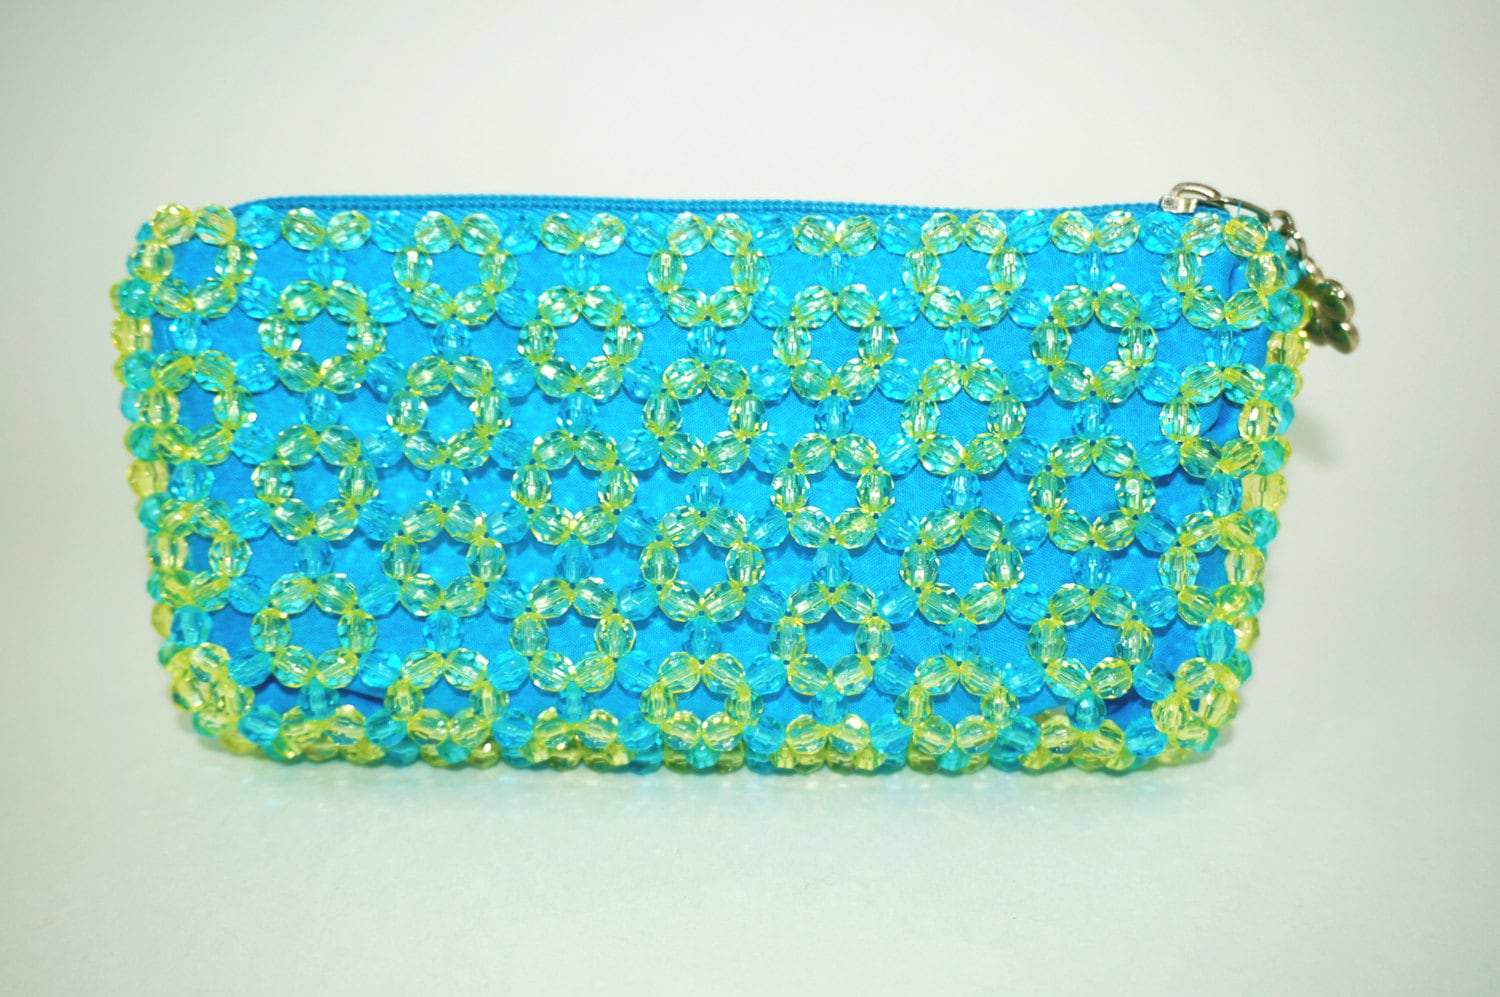 Beaded Clutch Small Beaded Clutch Bead Wallet Teal Clutch